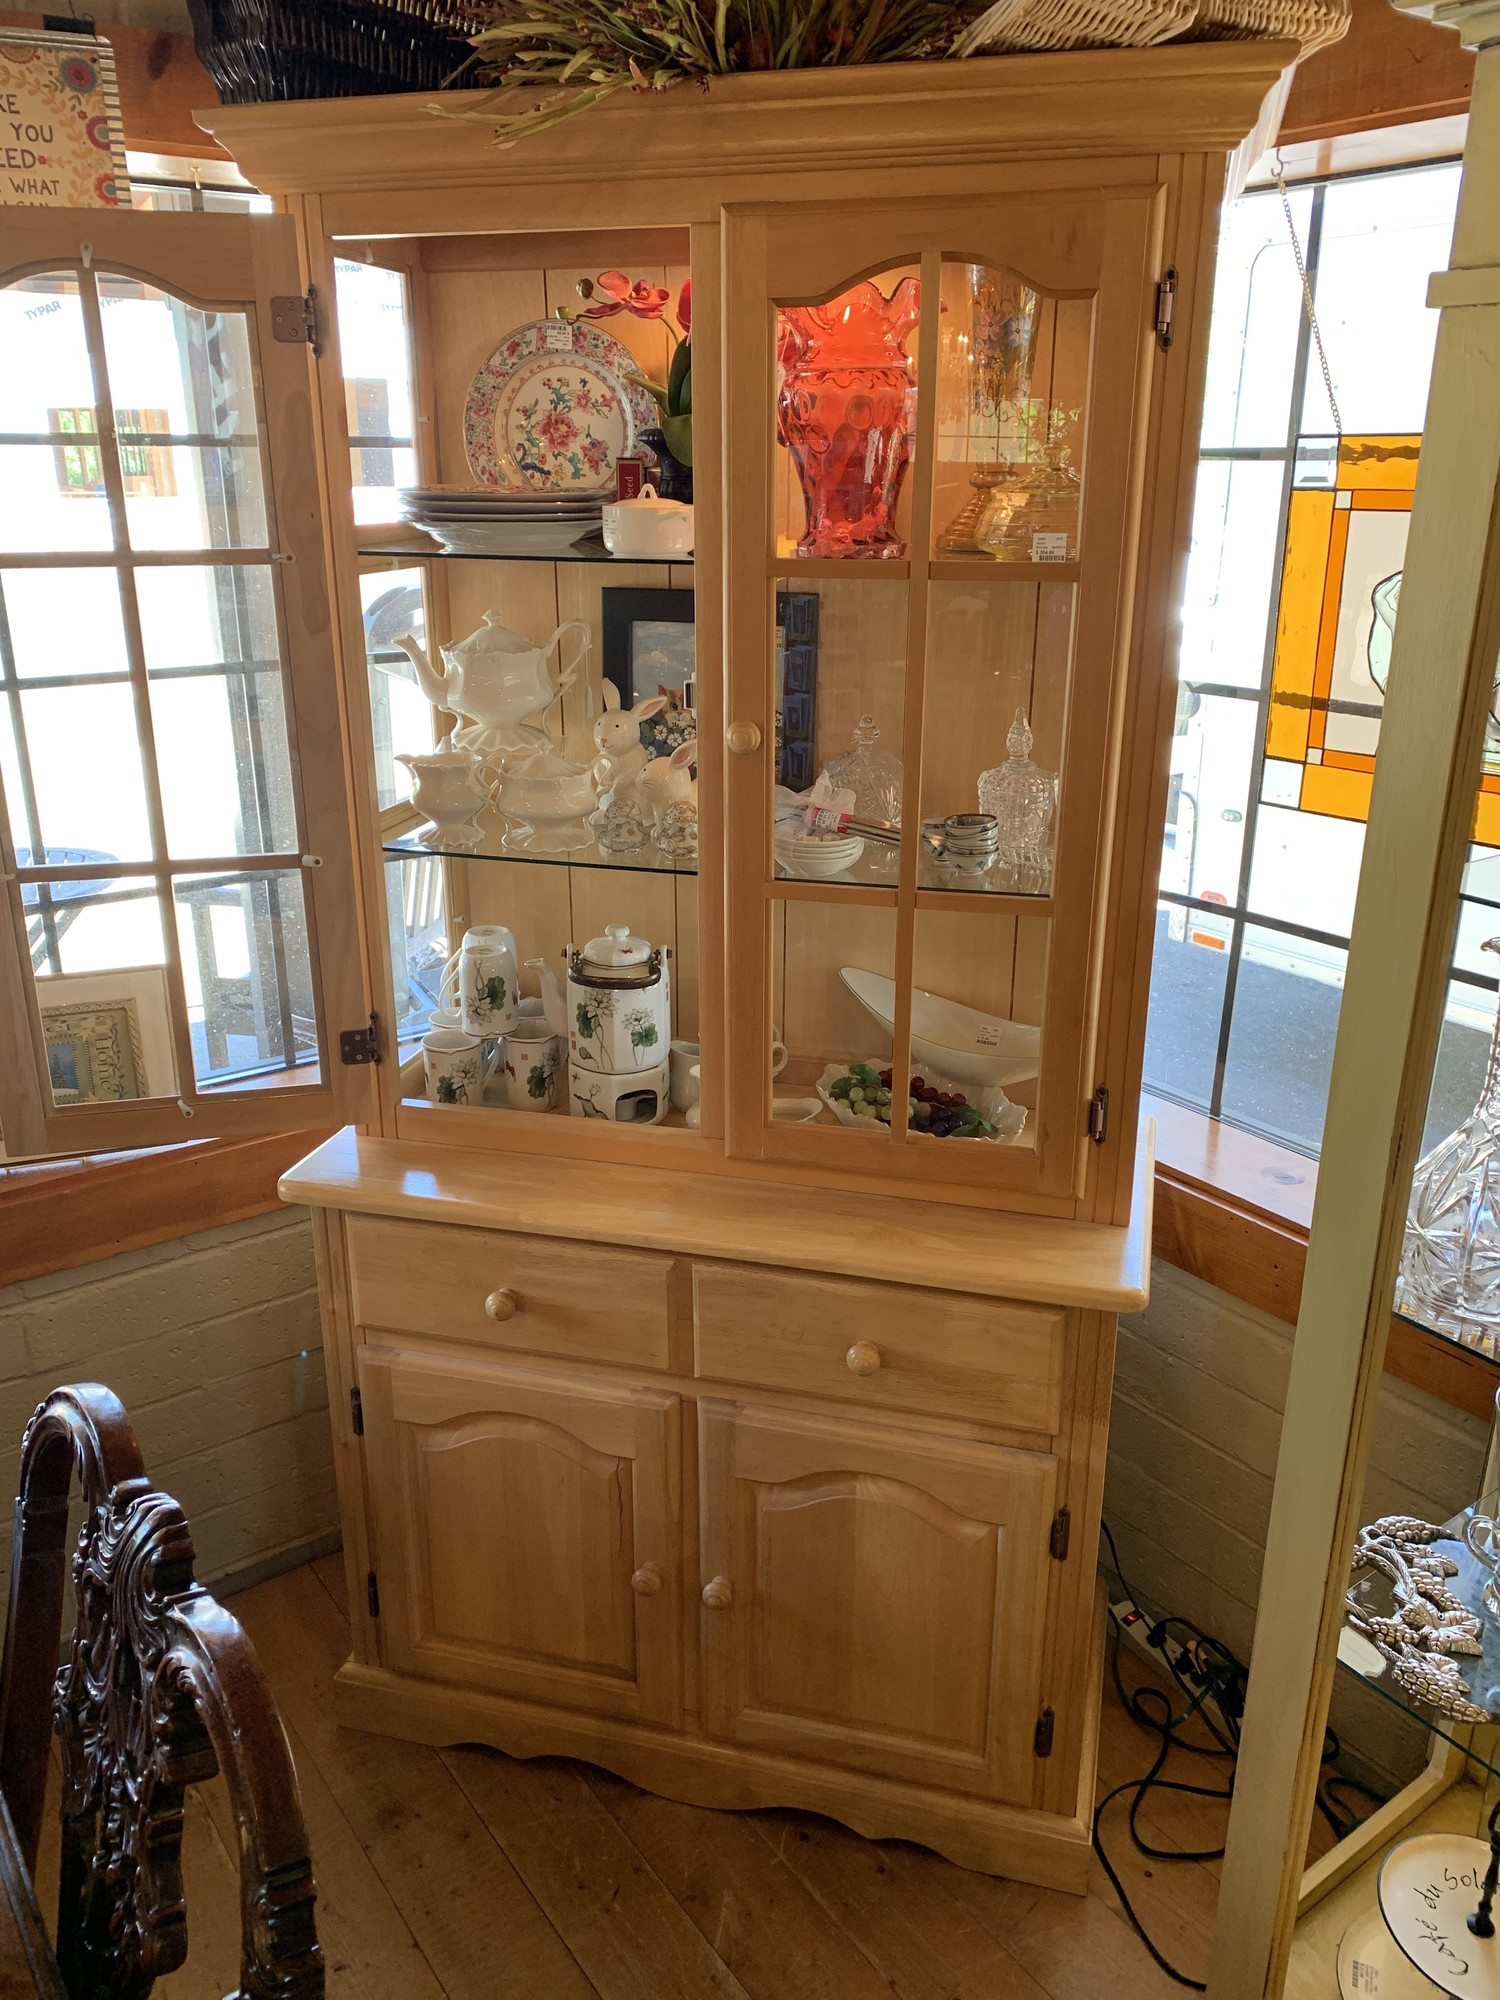 Very cute hutch that breaks into two pieces for easy moving. The cabinet lights up as well.